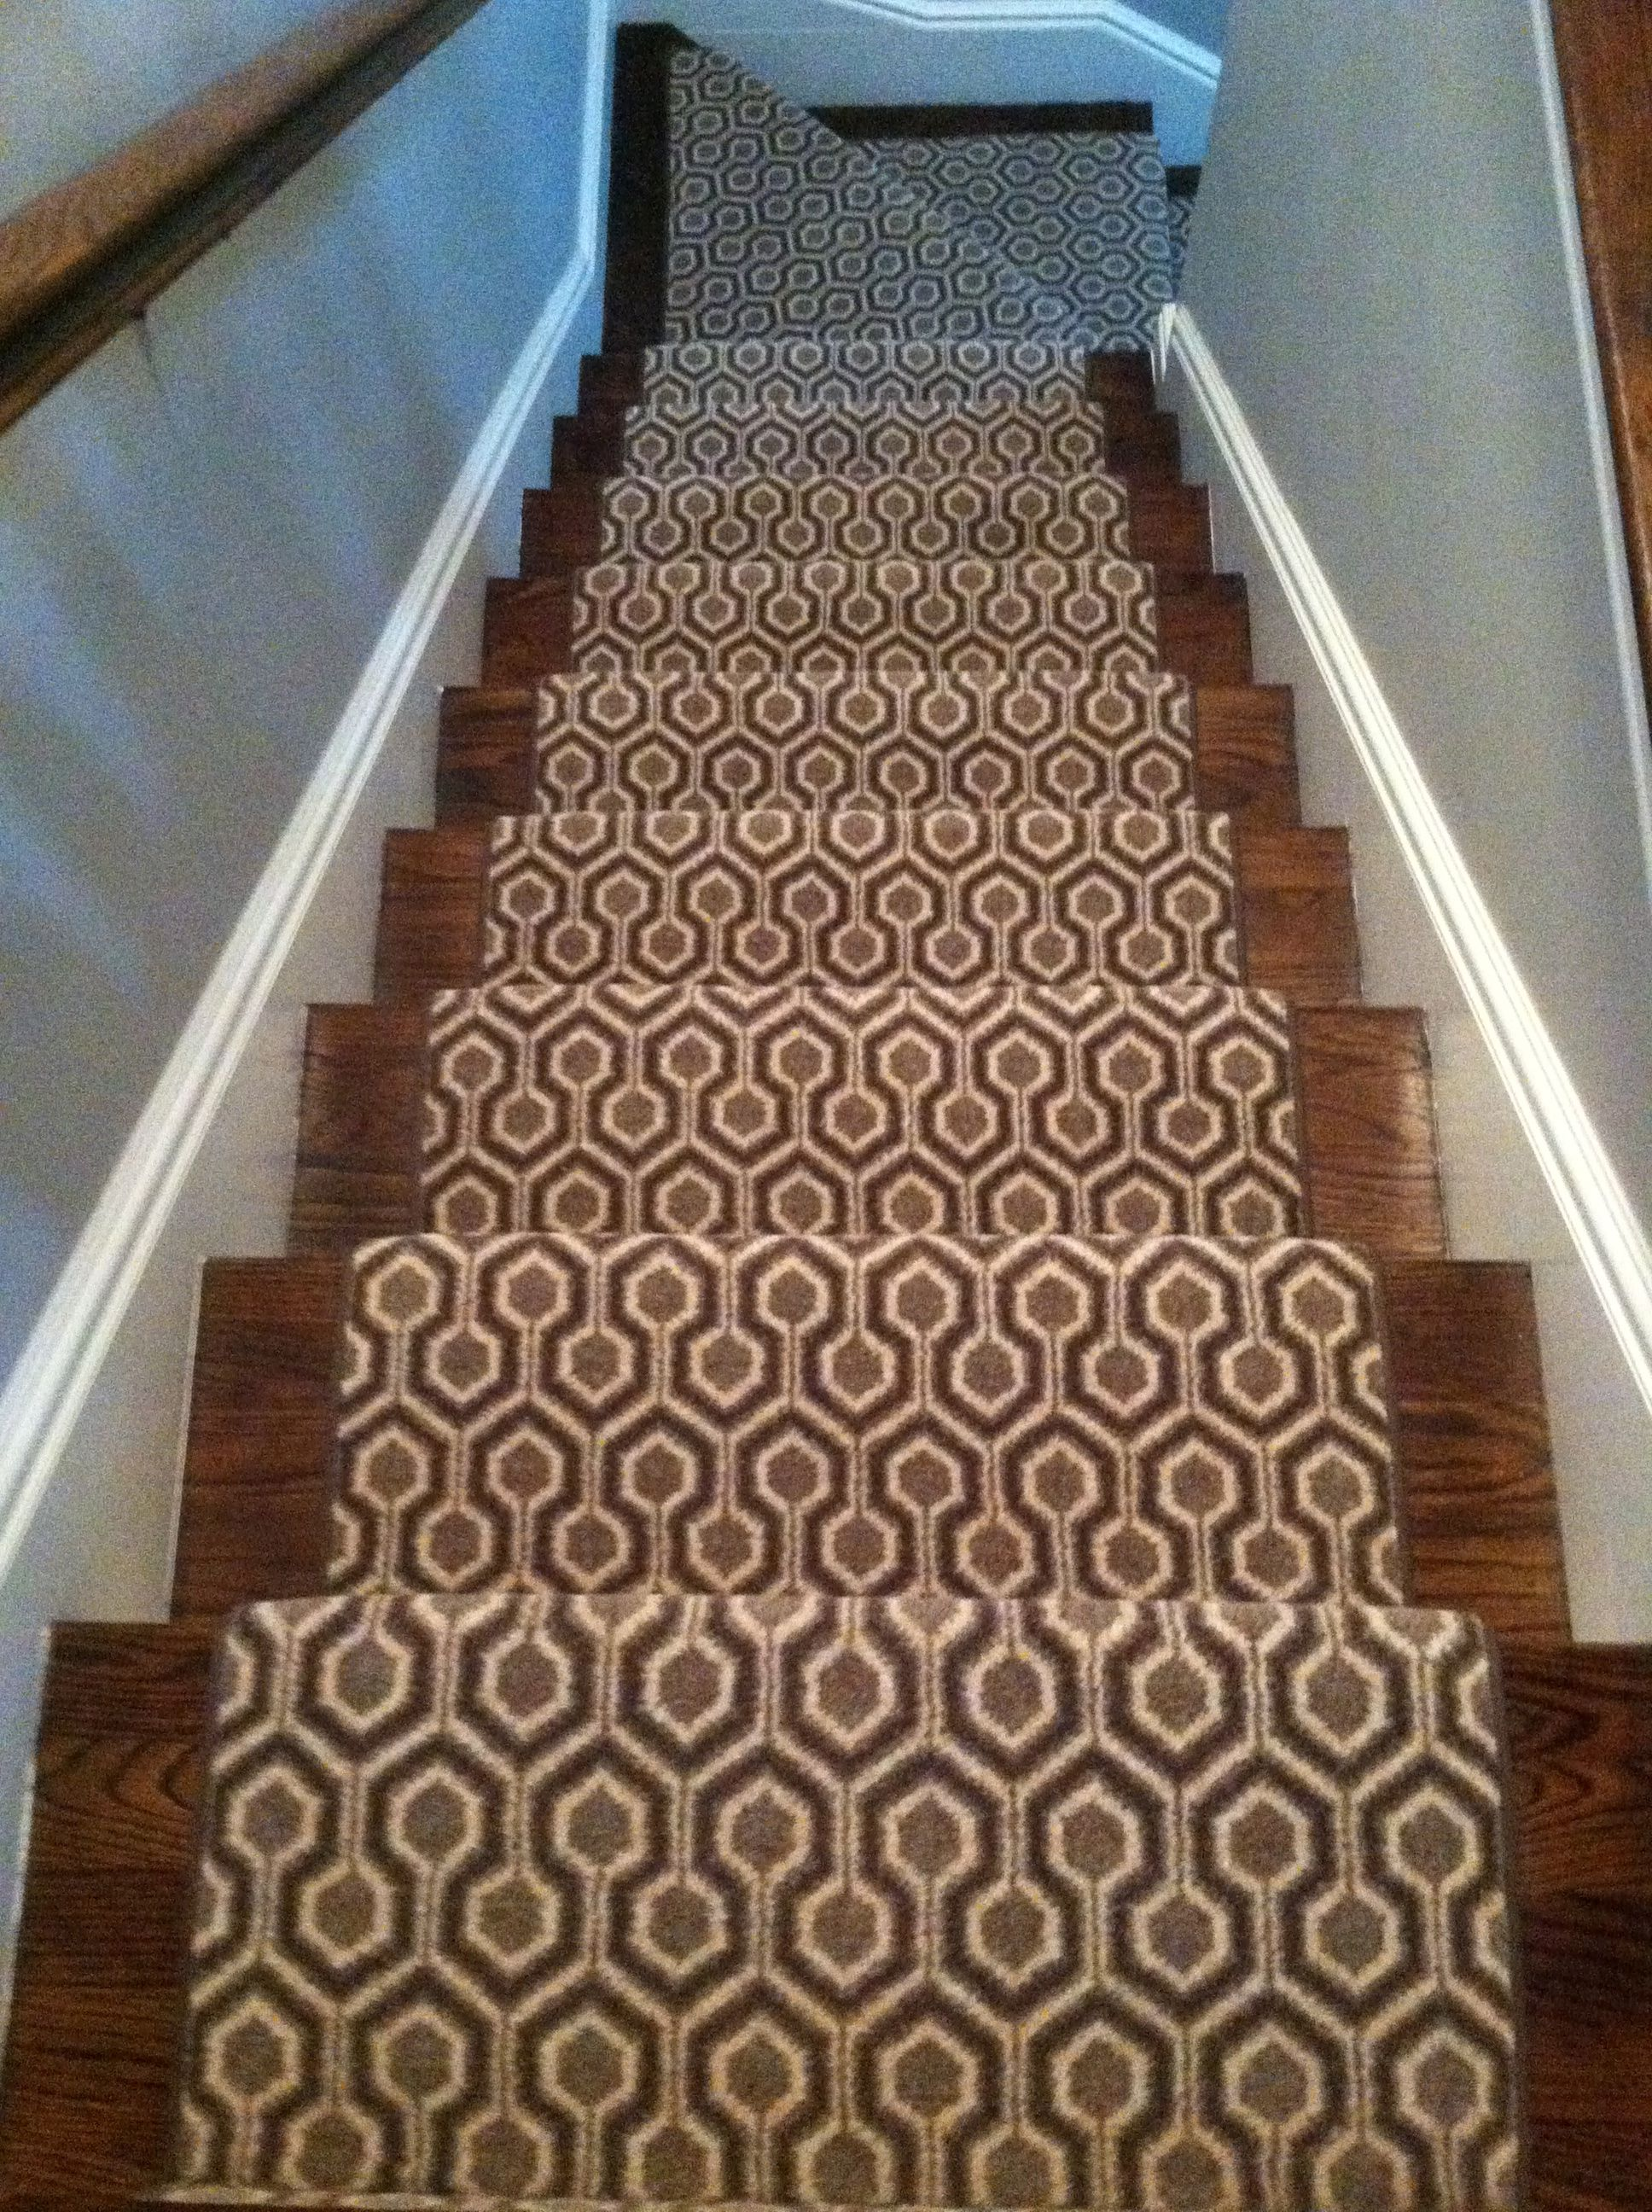 Ordinaire This Carpet Remnant From The Carpet Workroom Was Fabricated Into A Custom  Stair Runner. This